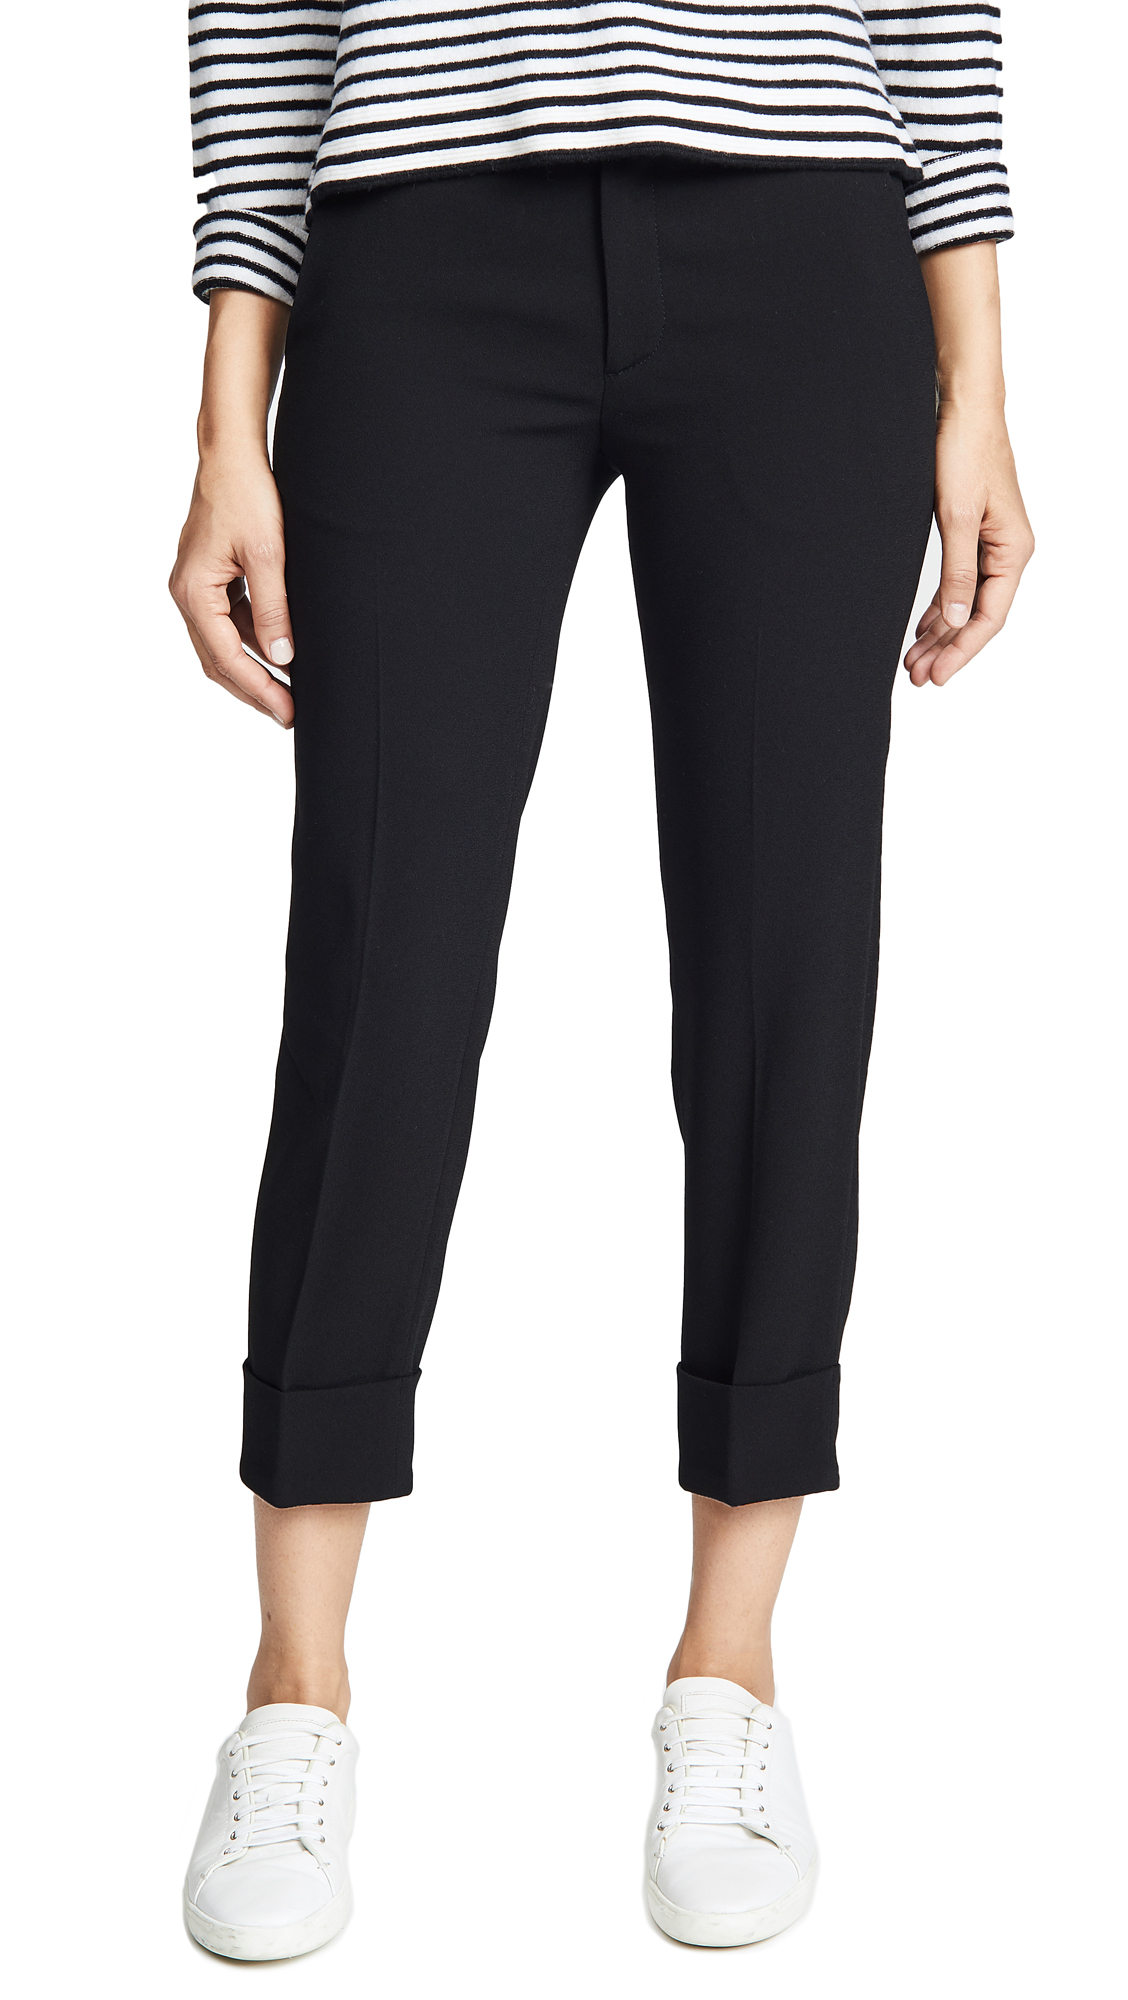 COIN POCKET TROUSERS